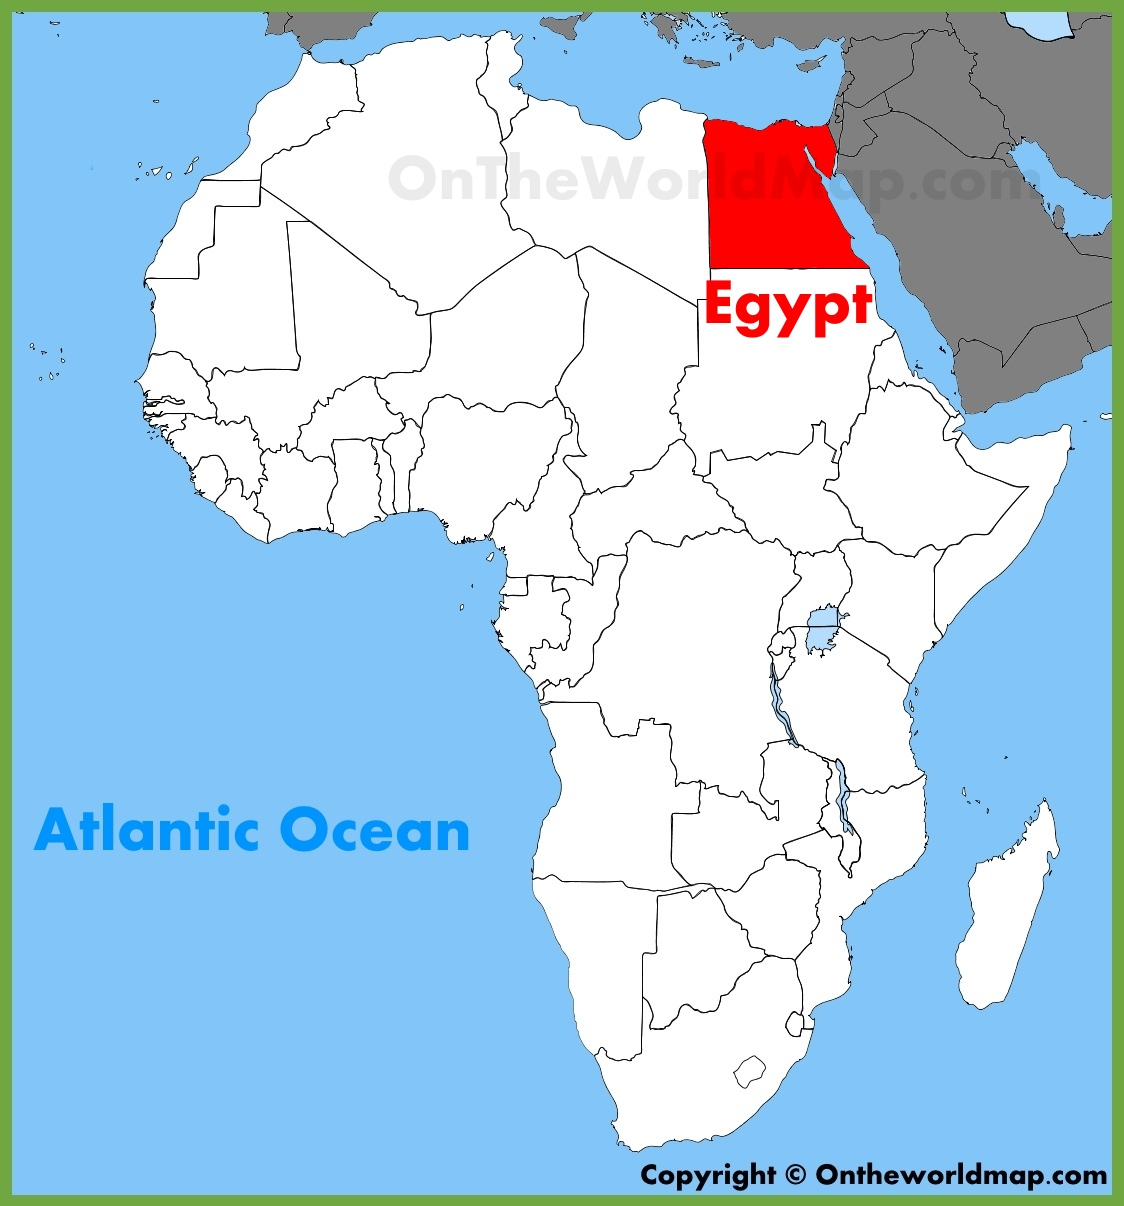 Egypt On Map Egypt location on the Africa map Egypt On Map